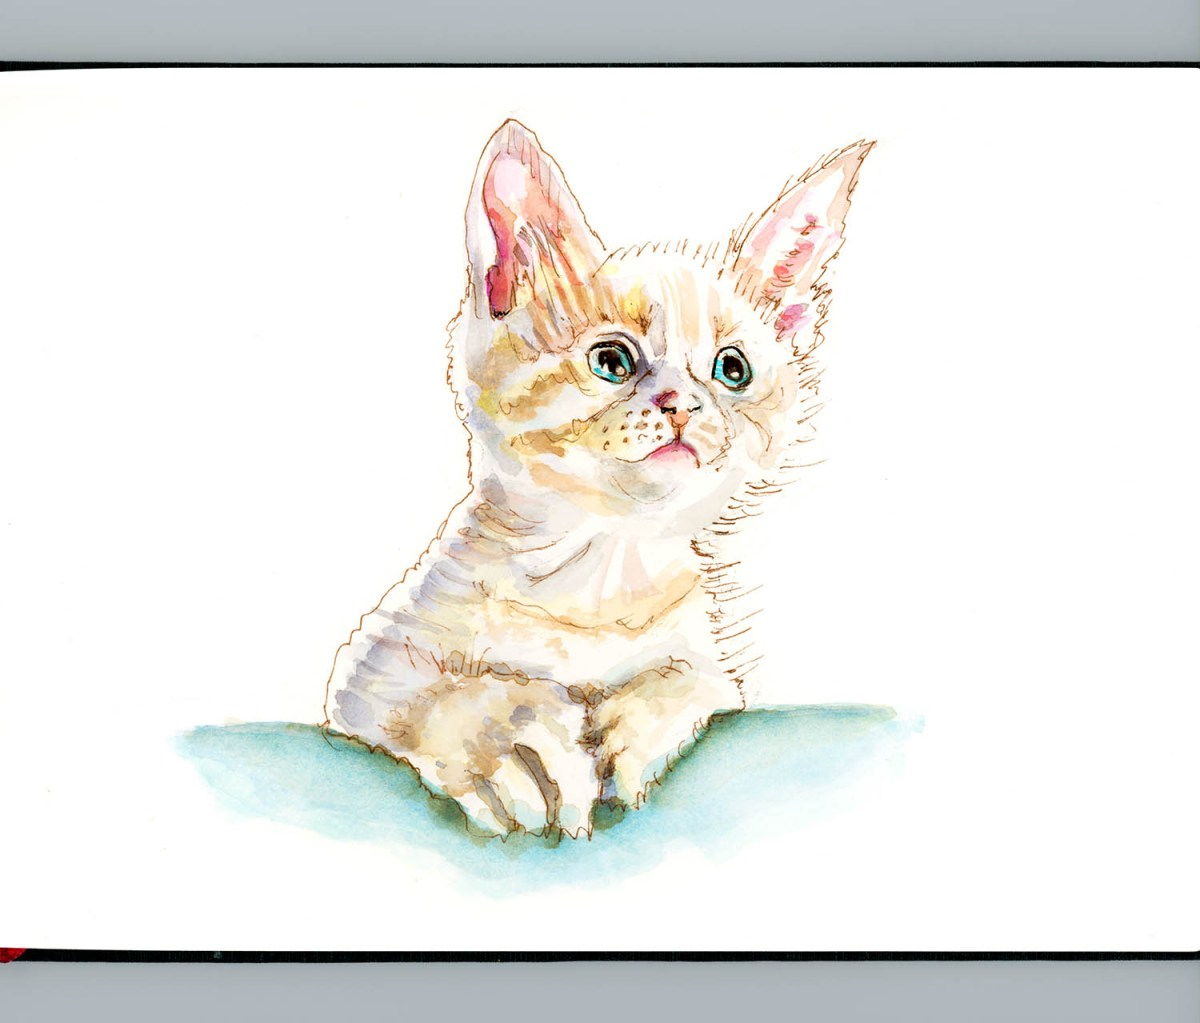 #WorldWatercolorGroup - Day 10 - Tiny LIttle Kitten - The Little Of Things - Doodlewash